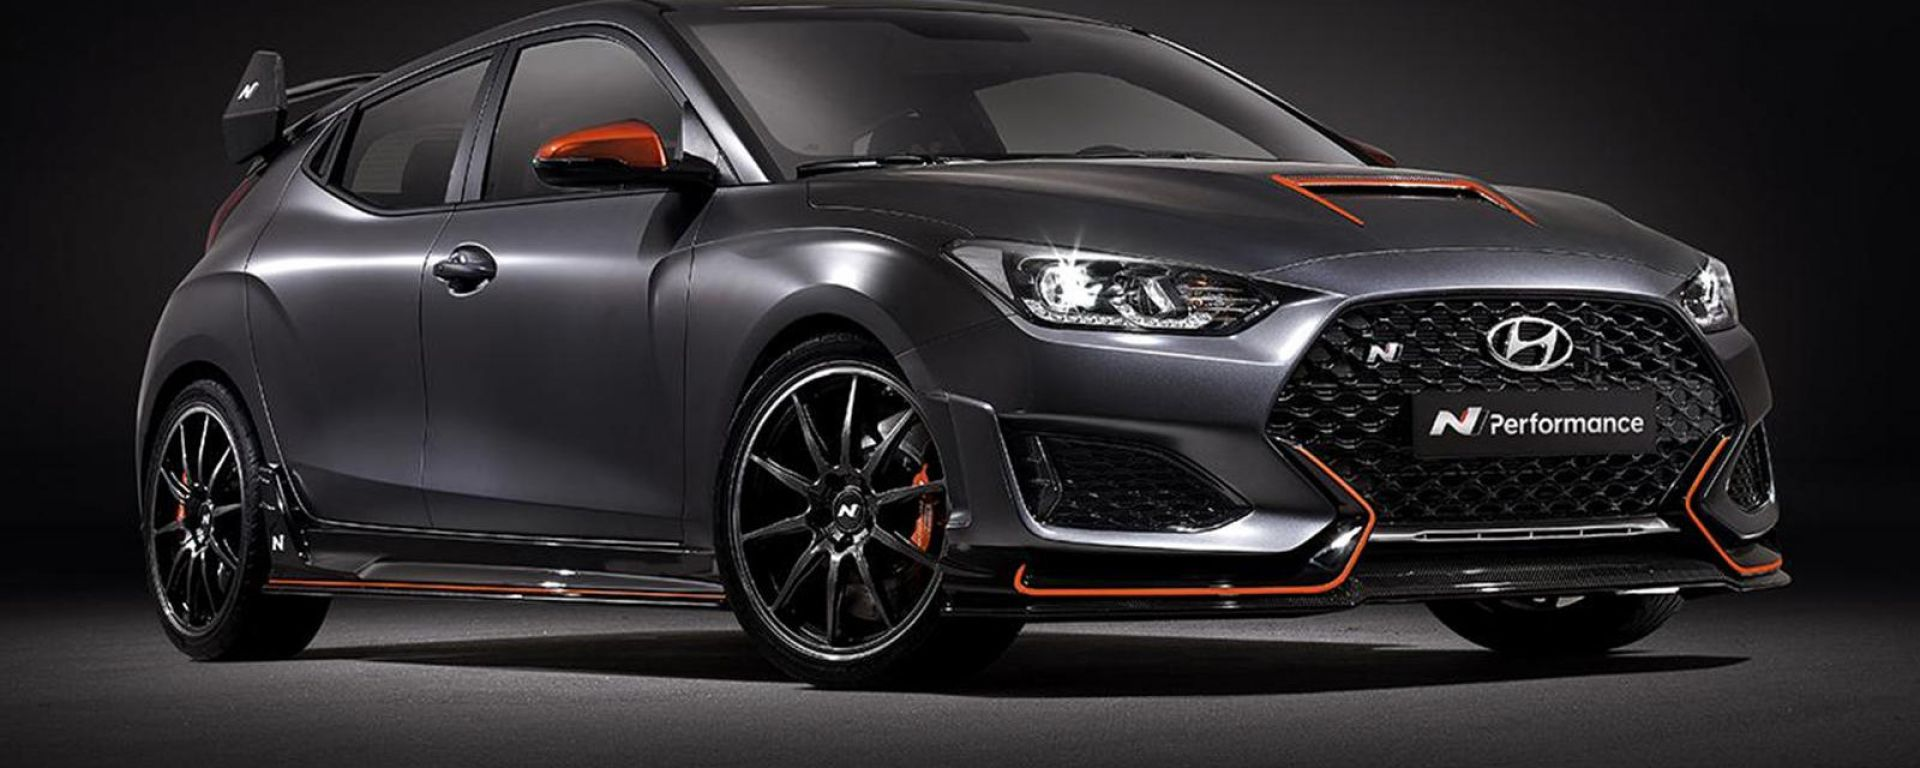 Hyundai Veloster N Performance Concept: il frontale